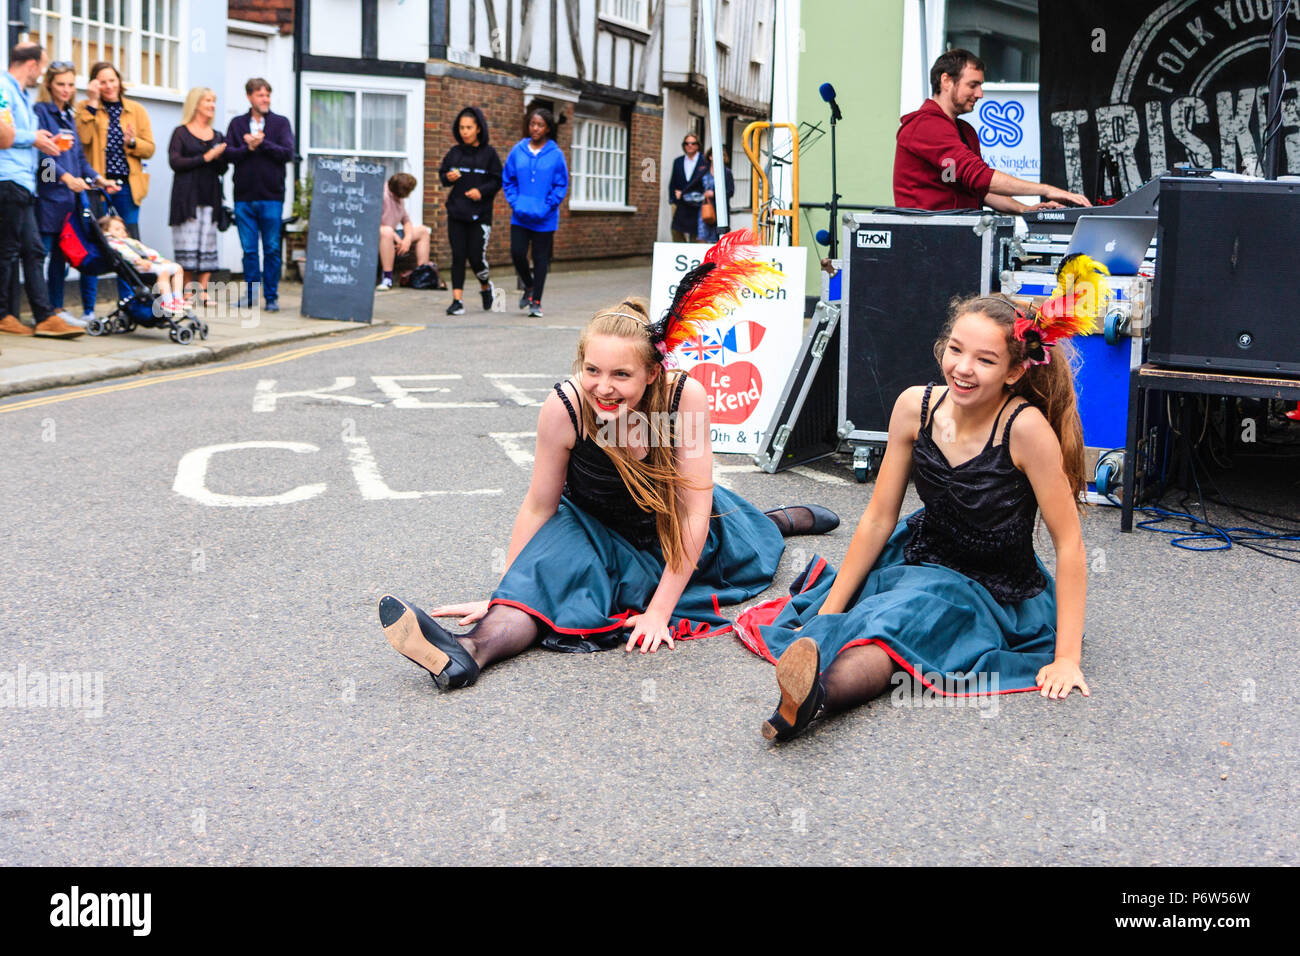 Two young women, teenage girls, performing the Can-Can in a street during a festive event. Stage with musicians behind them. Stock Photo